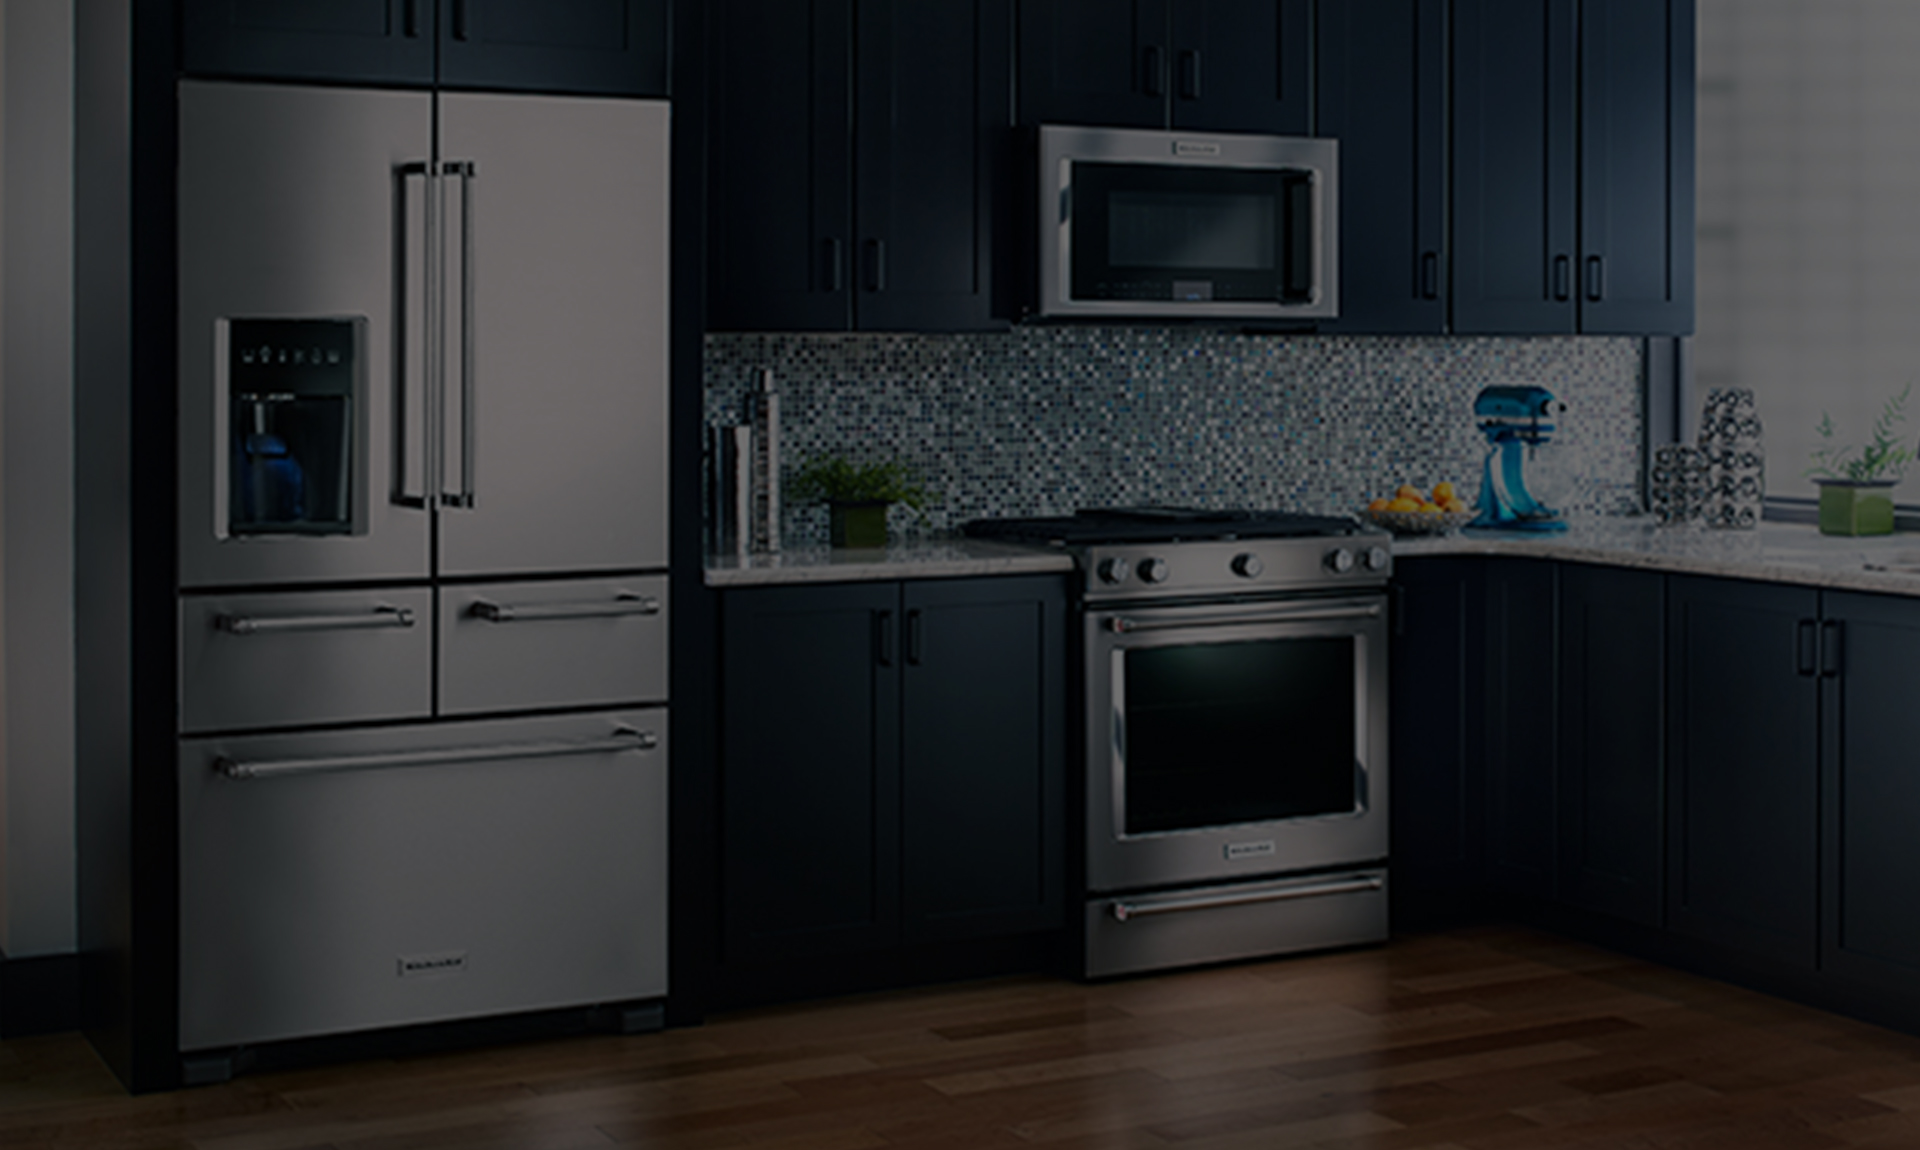 Appliance Repair In The South Metro Area Of Denver Co